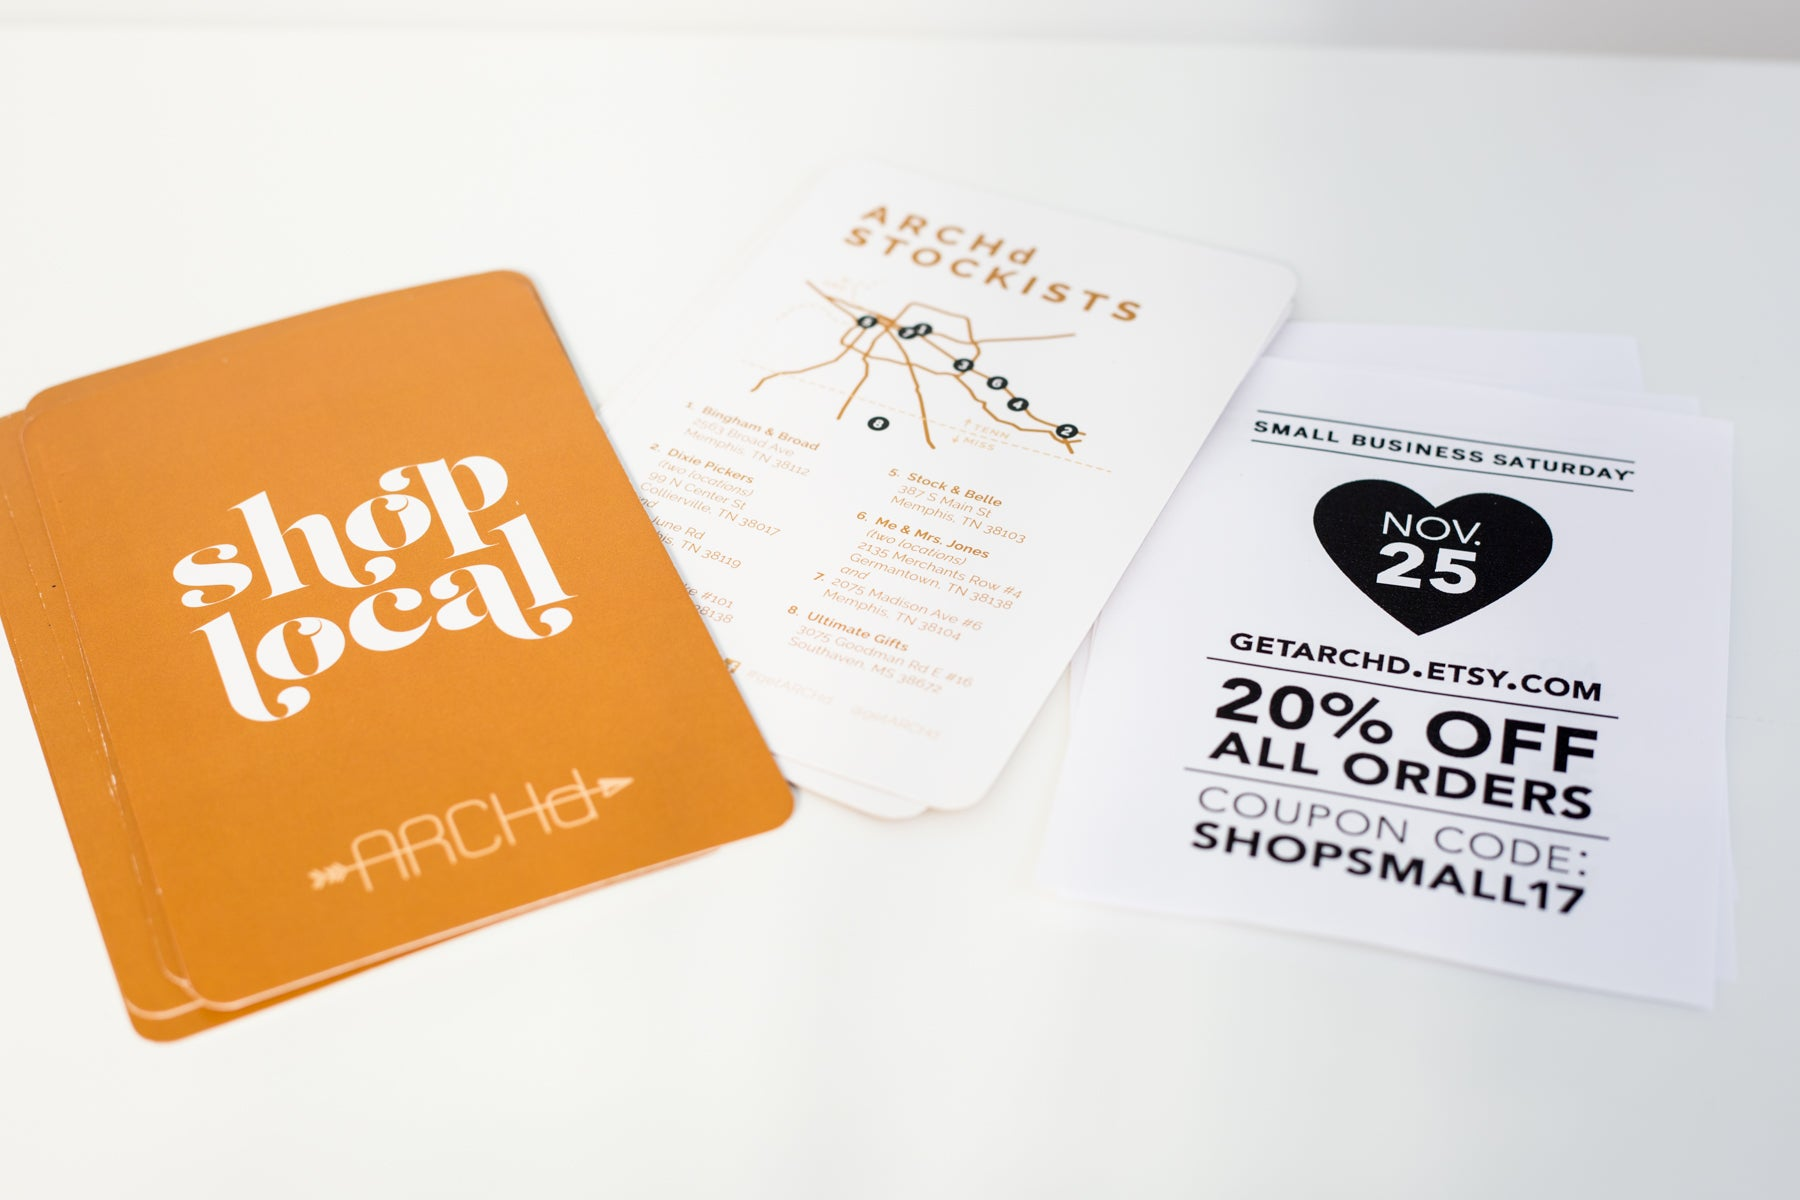 Vendor booth swag flyers design ideas where to shop local sign coupon branding ARCHd